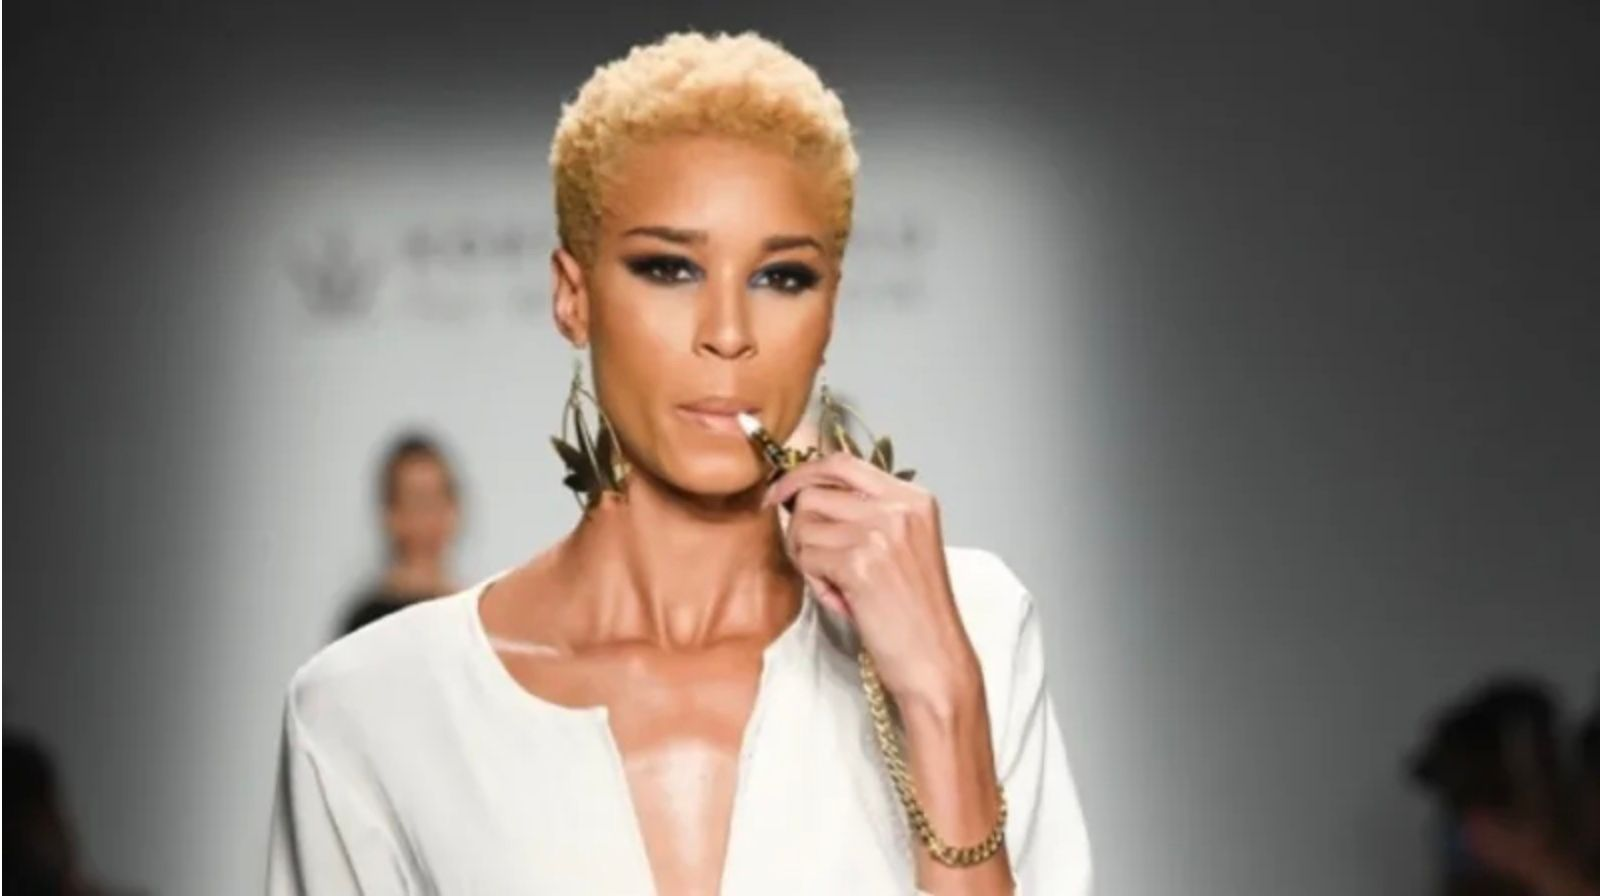 project-runway-runner-up-korto-momolu-made-waves-in-the-fashion-industry-through-her-cross-disciplinary-collaboration-with-one-of-the-main-authorities-on-the-cannabis-industry-women-grow